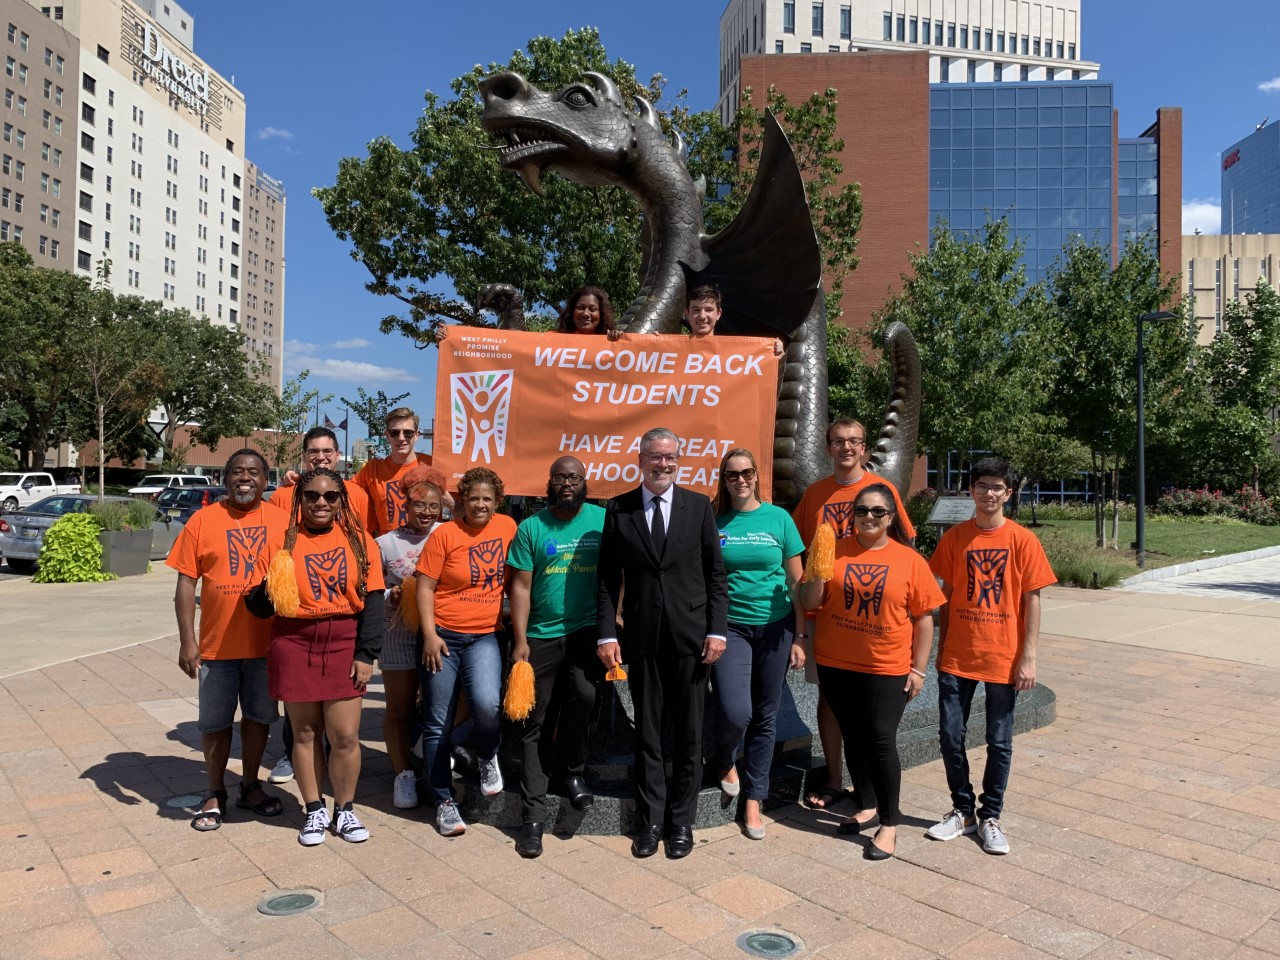 president john fry posing with students